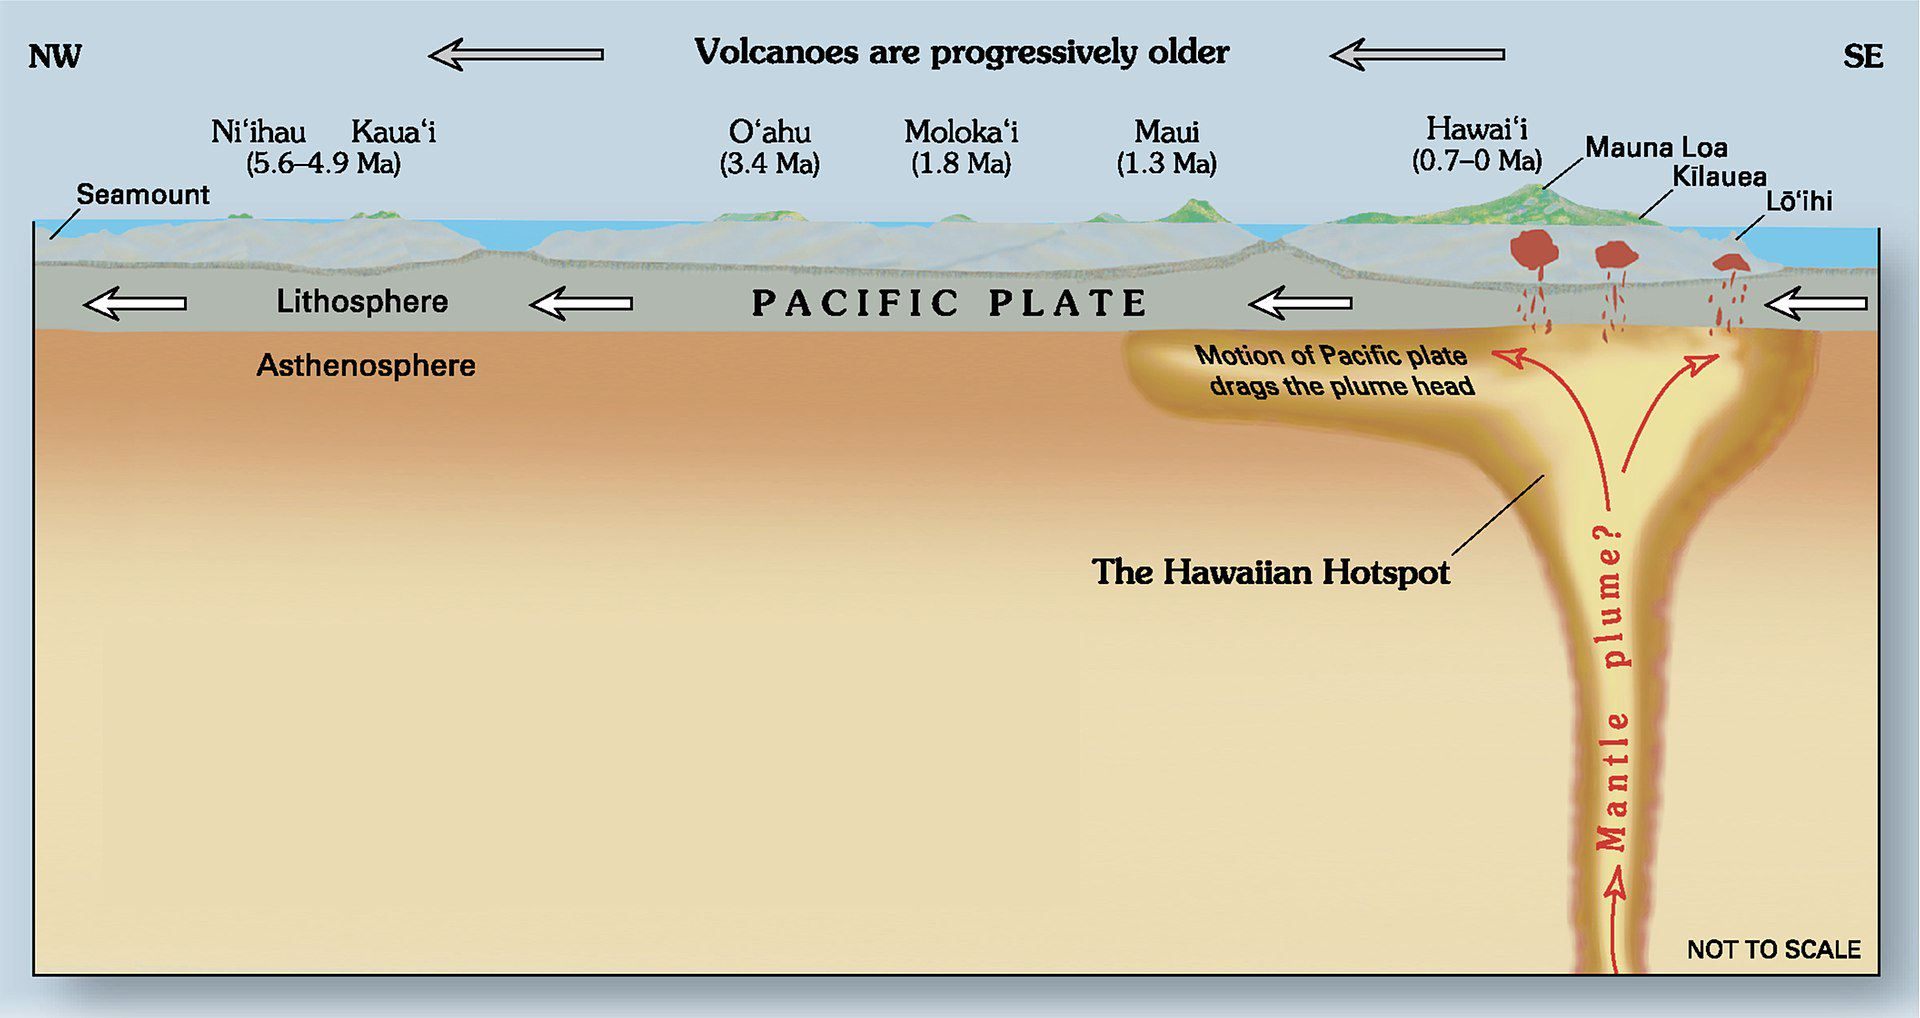 The Hawaiian islands are the result of a hot spot that created each island as the Pacific plate moved. Similar hotspots exist around the planet.